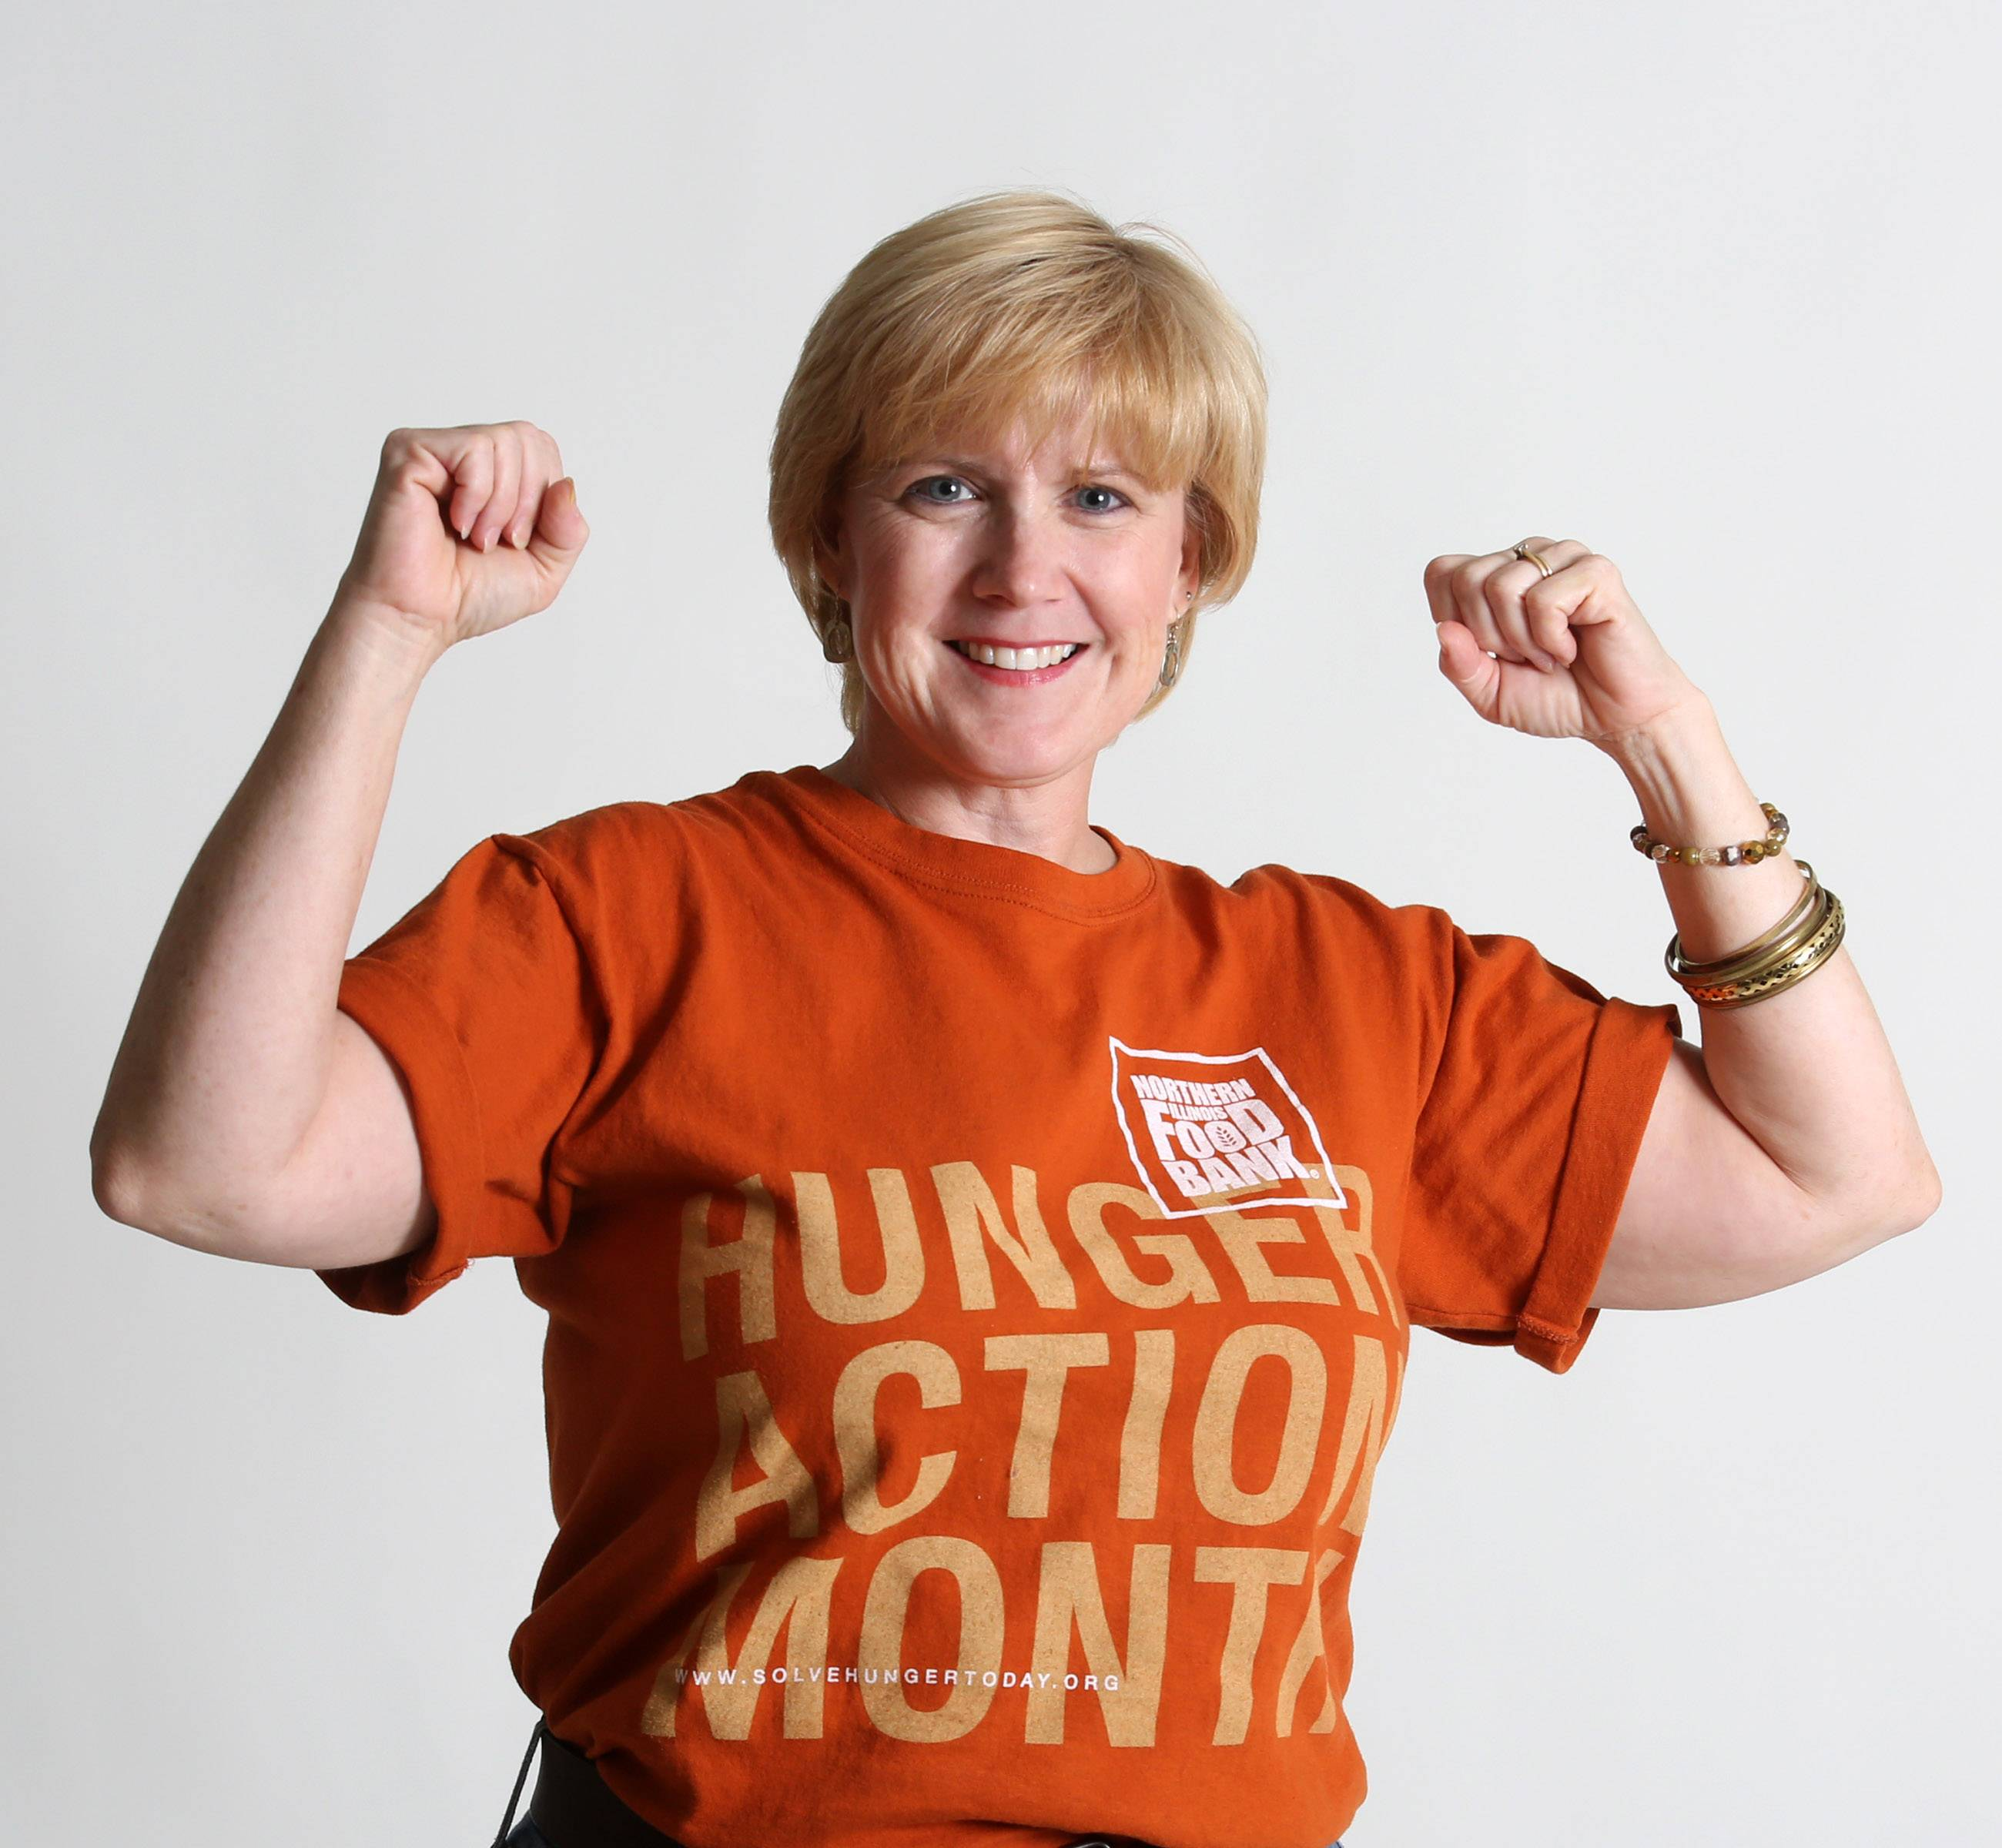 Food Editor Deborah Pankey wears orange to support Northern Illinois Food Bank's Hunger Action Day on Sept. 4.